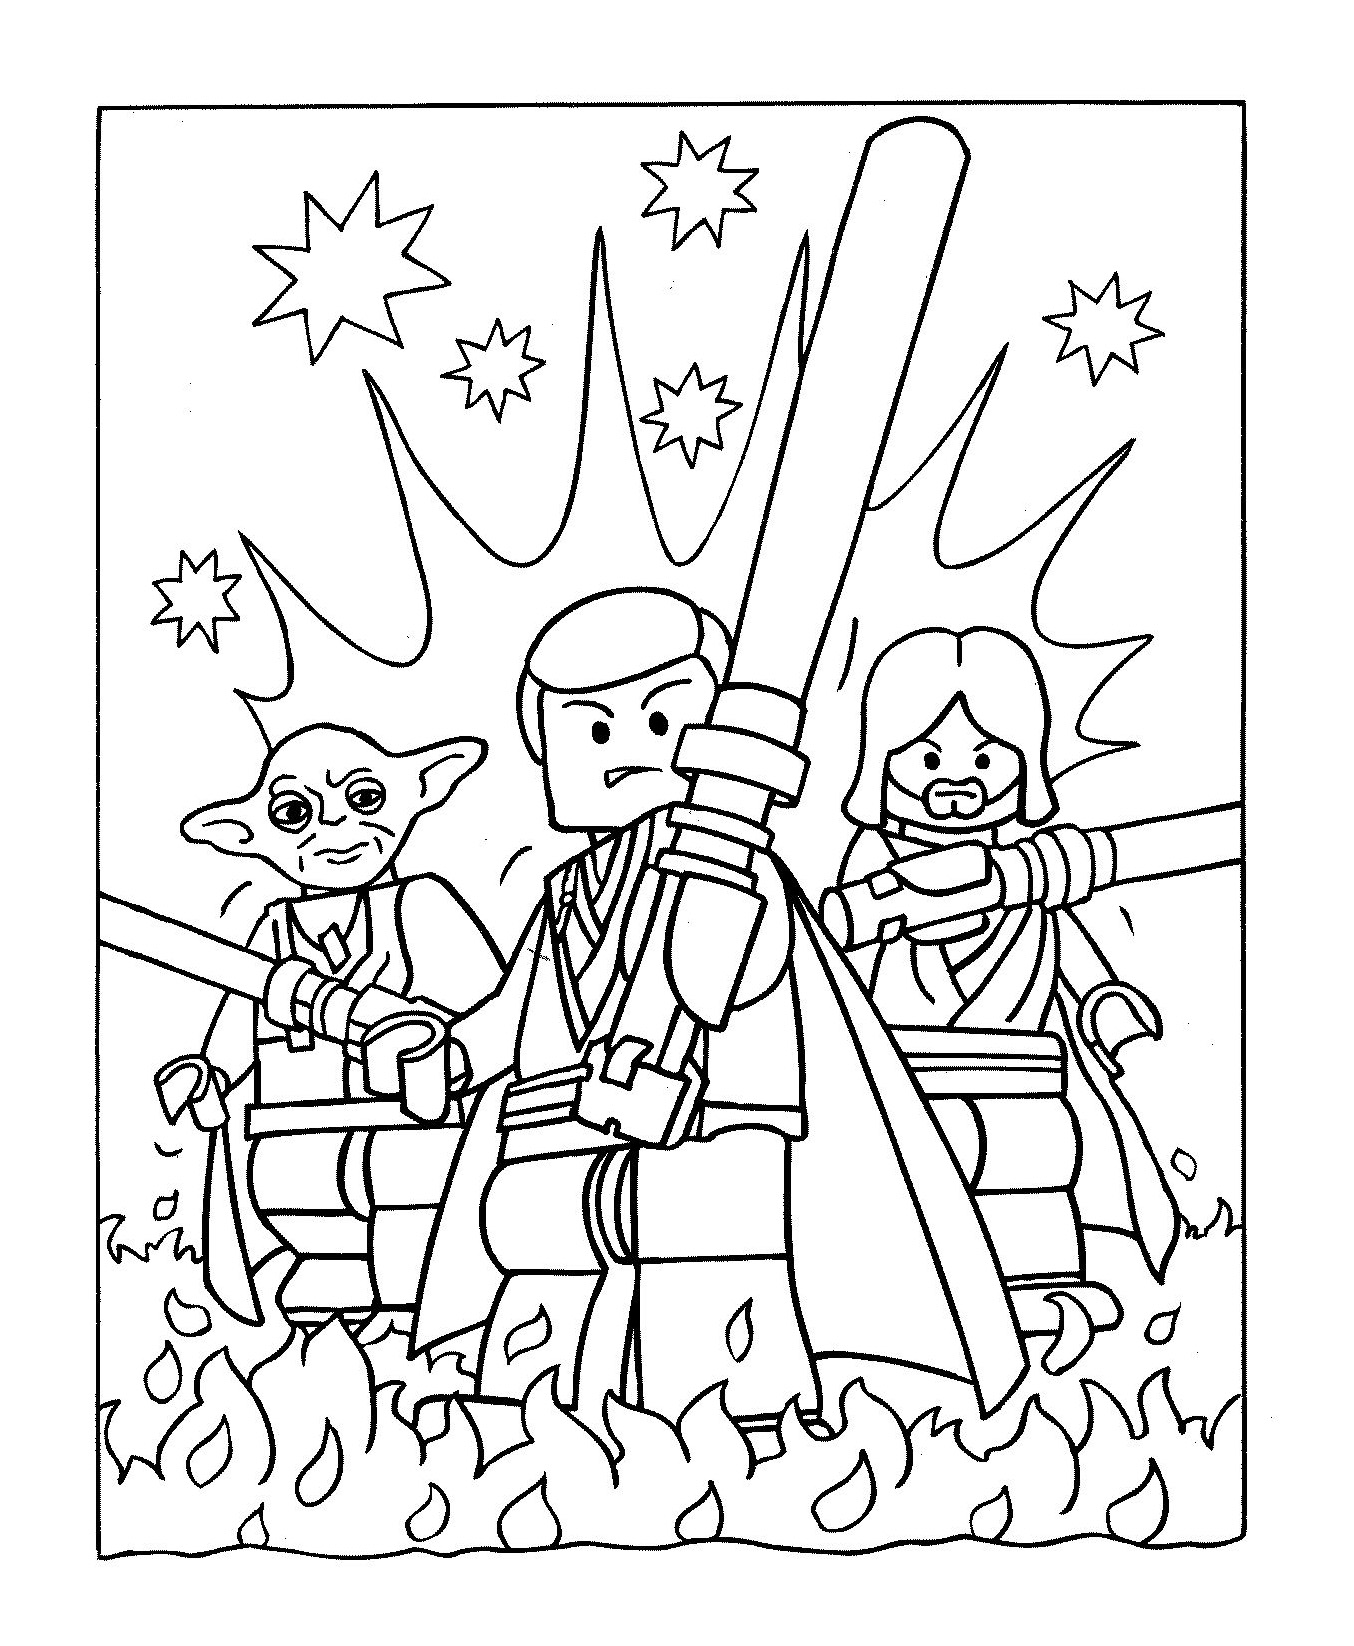 Star Wars 14 Coloriage Star Wars Coloriages Pour Enfants